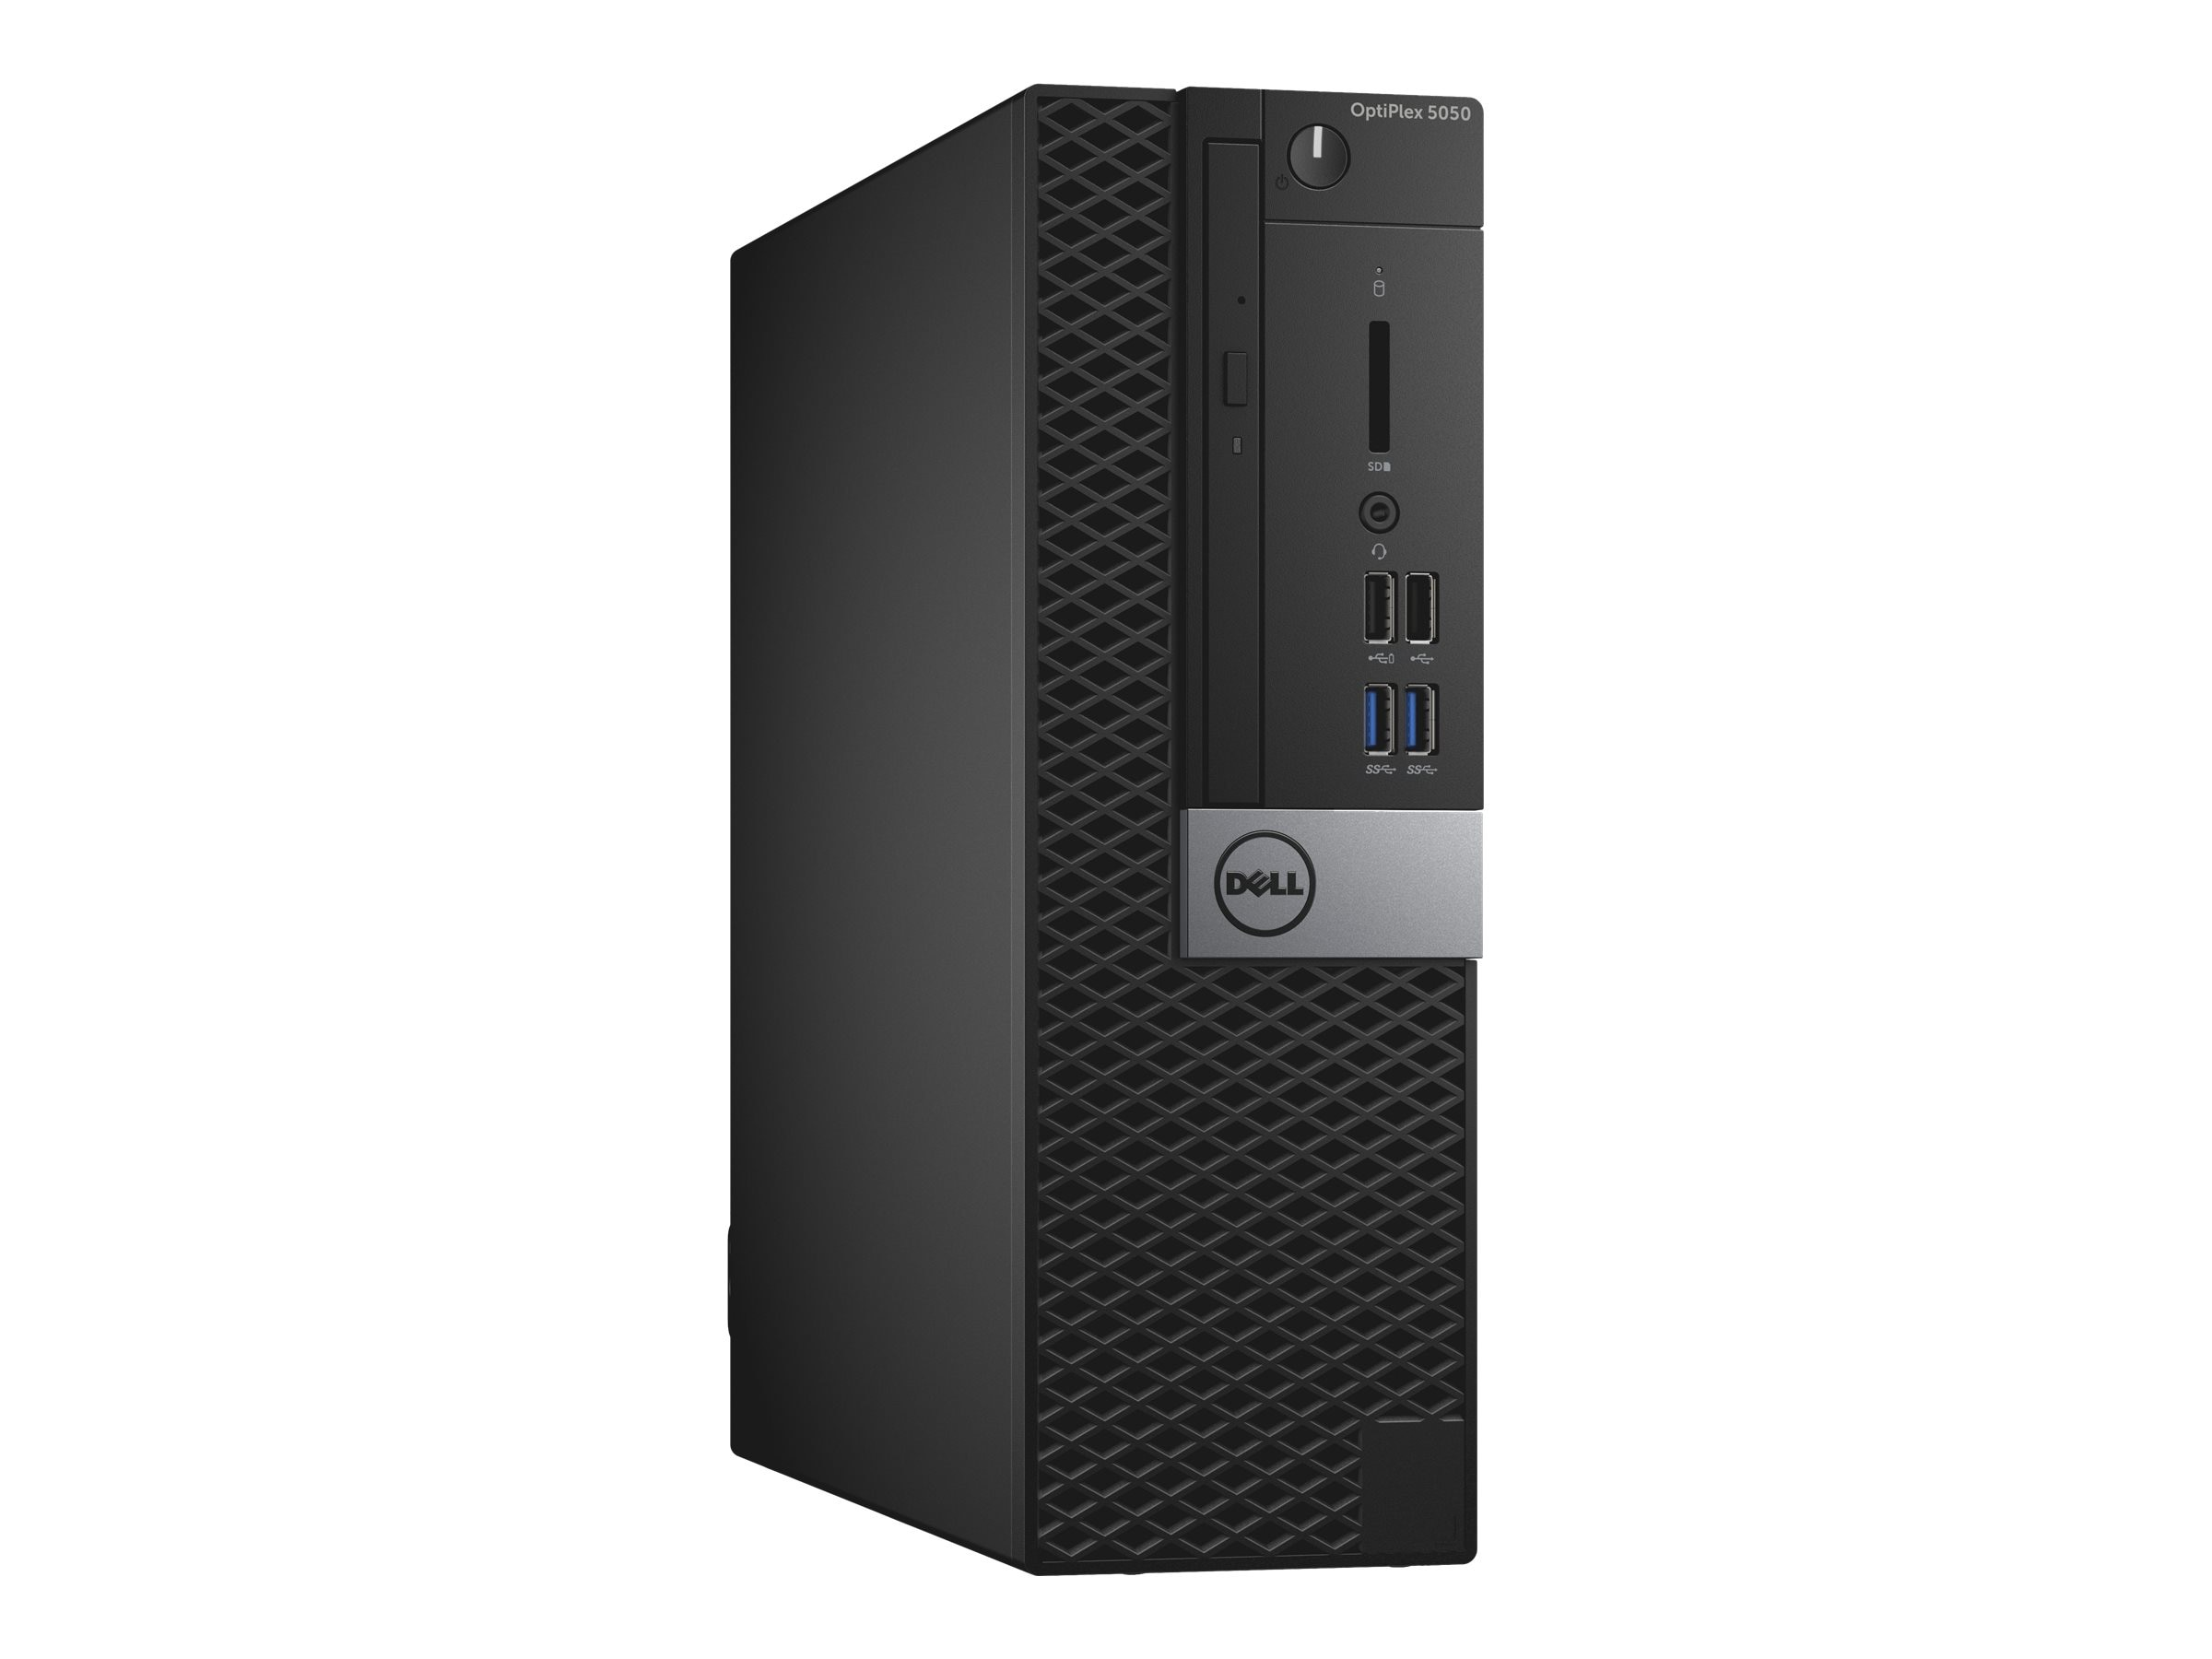 Dell YMYT2 Image 3